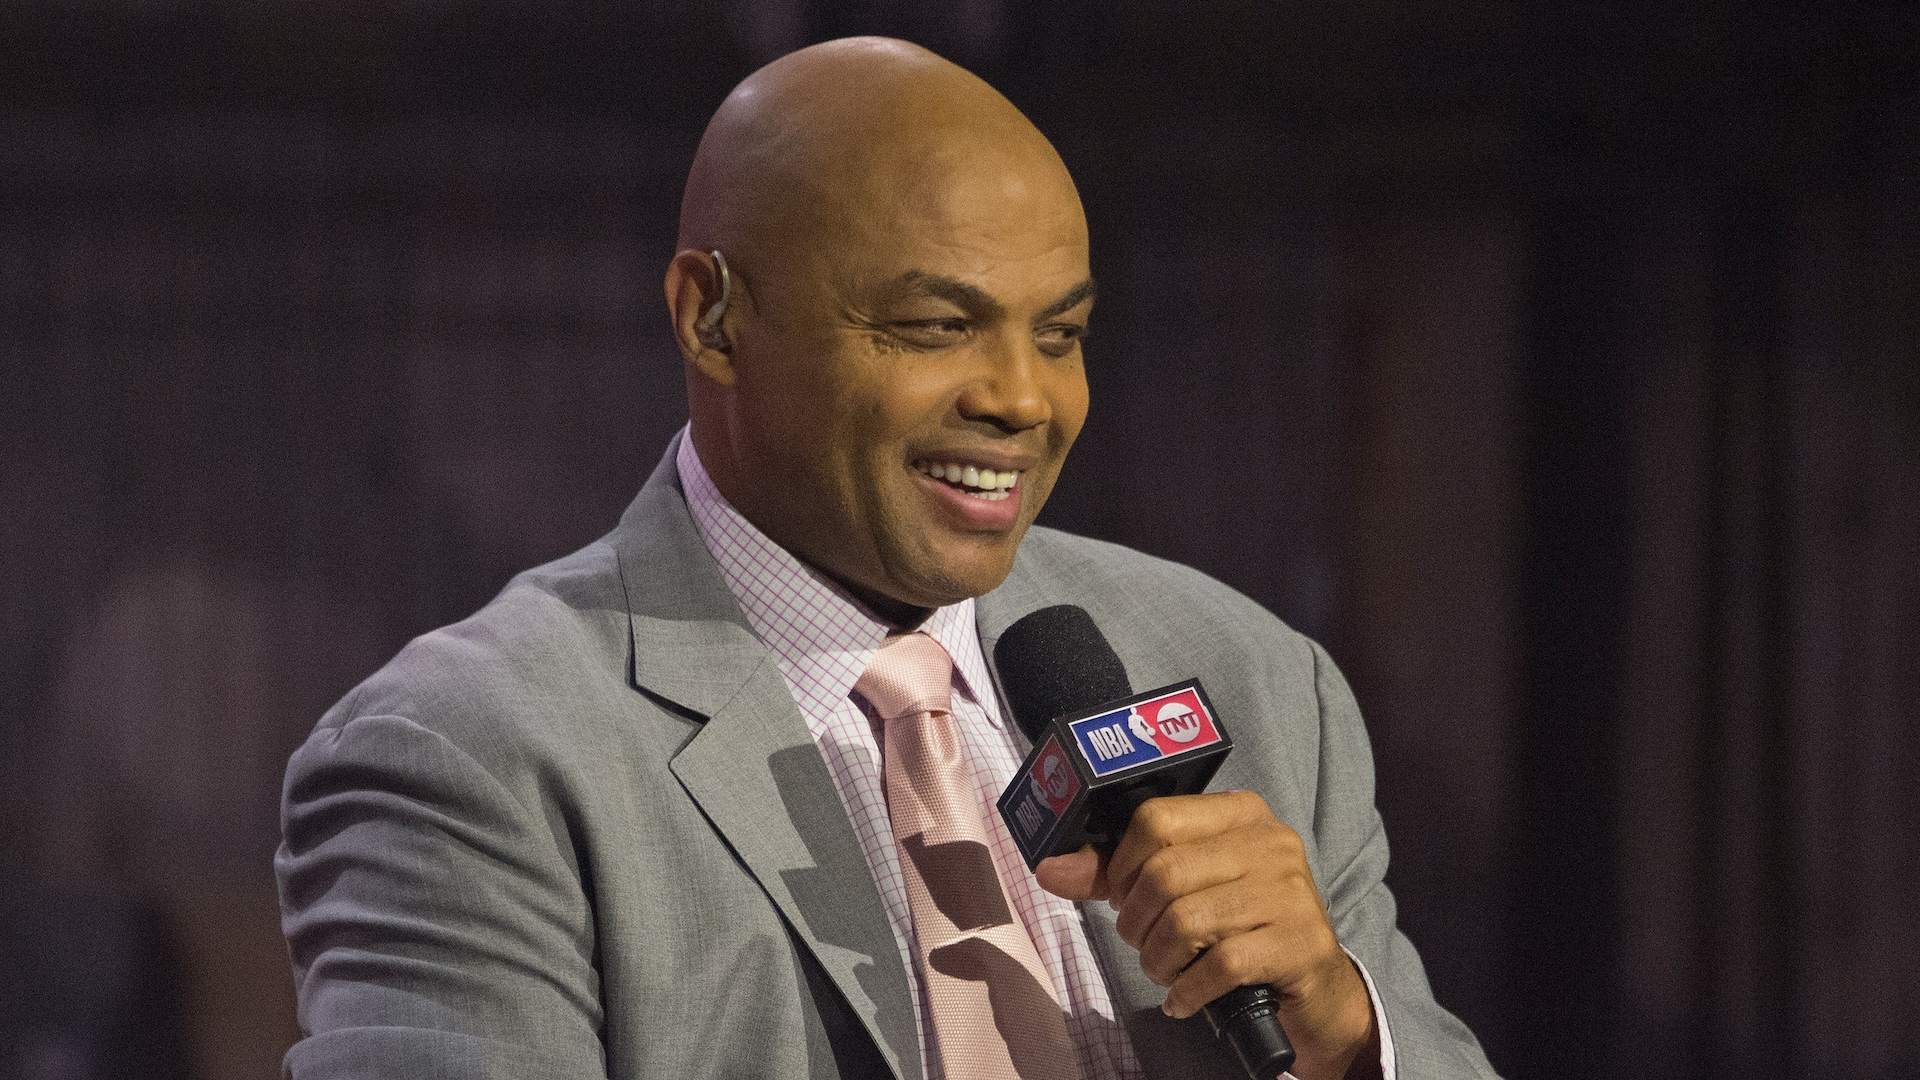 Charles Barkley says he has tested negative for COVID-19